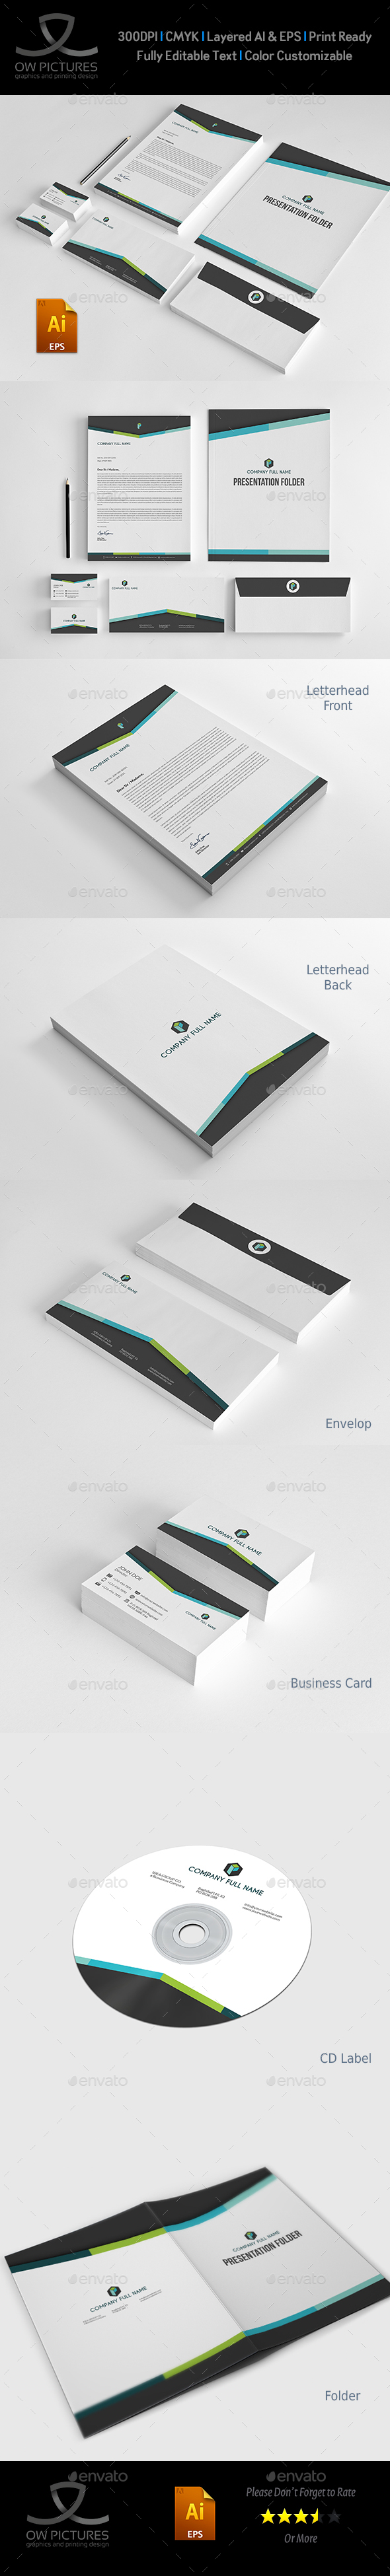 Corporate Stationery Pack Design Template Vol.13